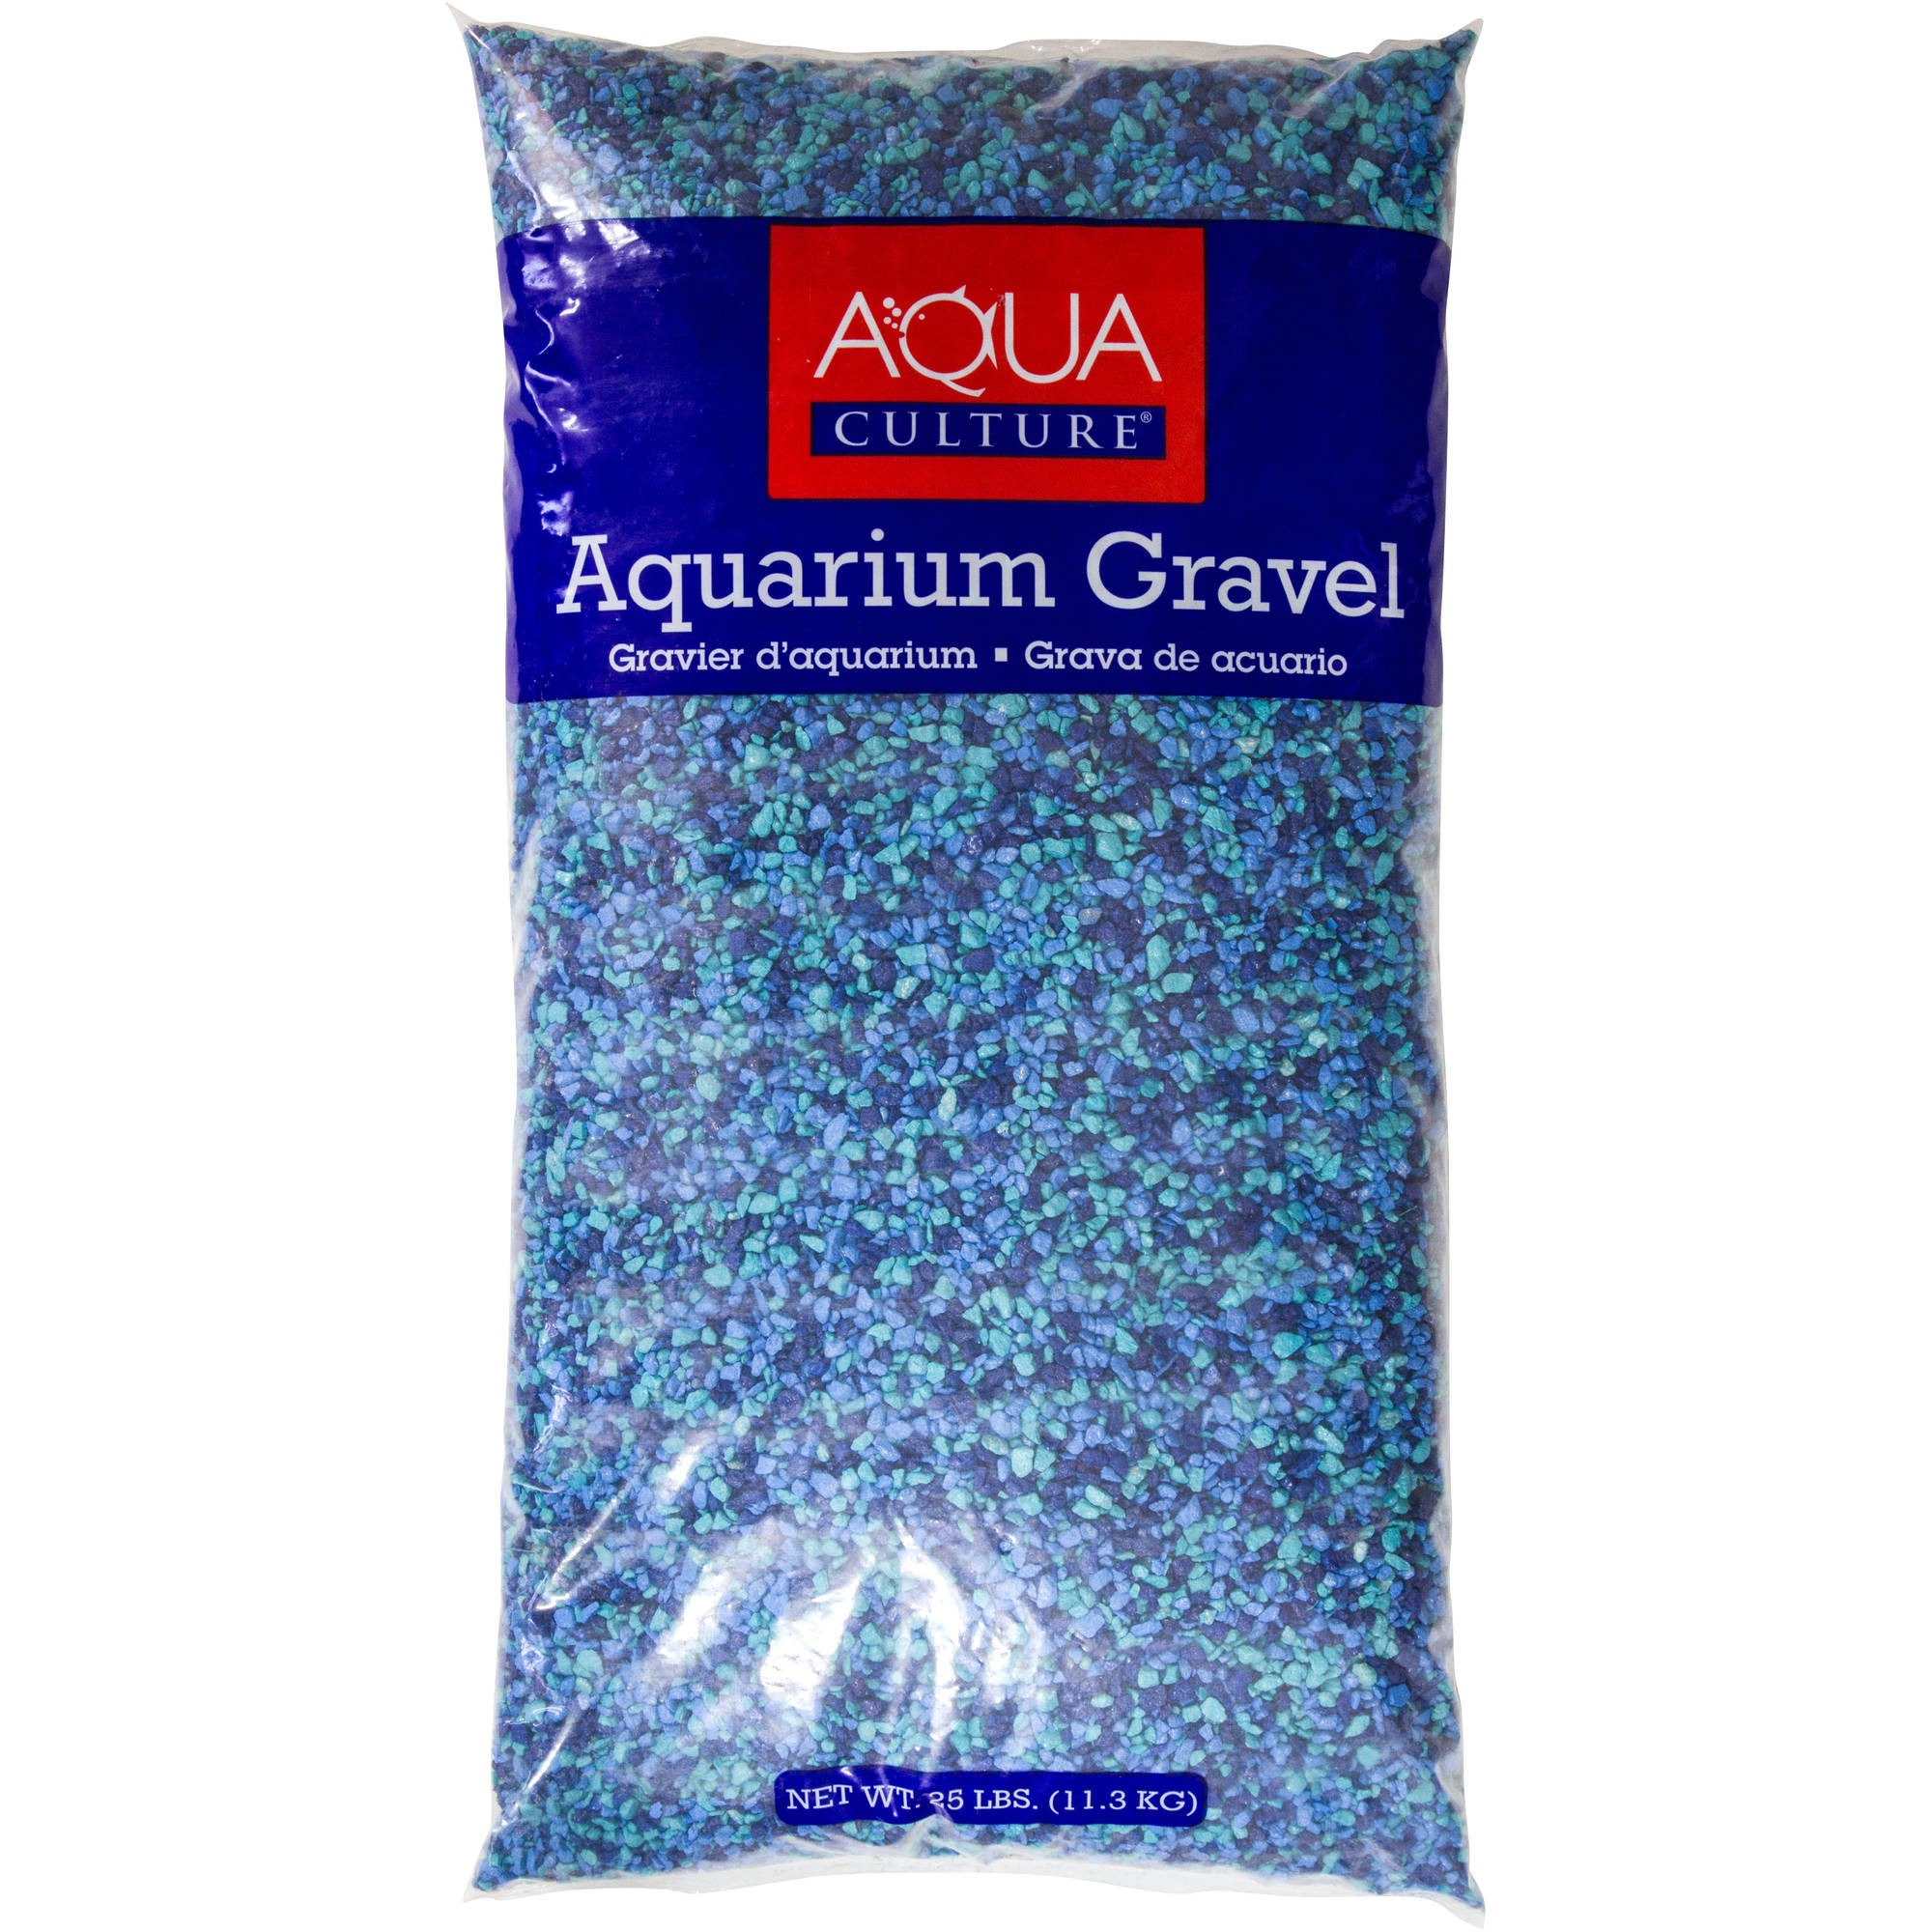 Aqua Culture Aquarium Gravel, Caribbean, 25-Pound by Clifford W. Estes Co Inc